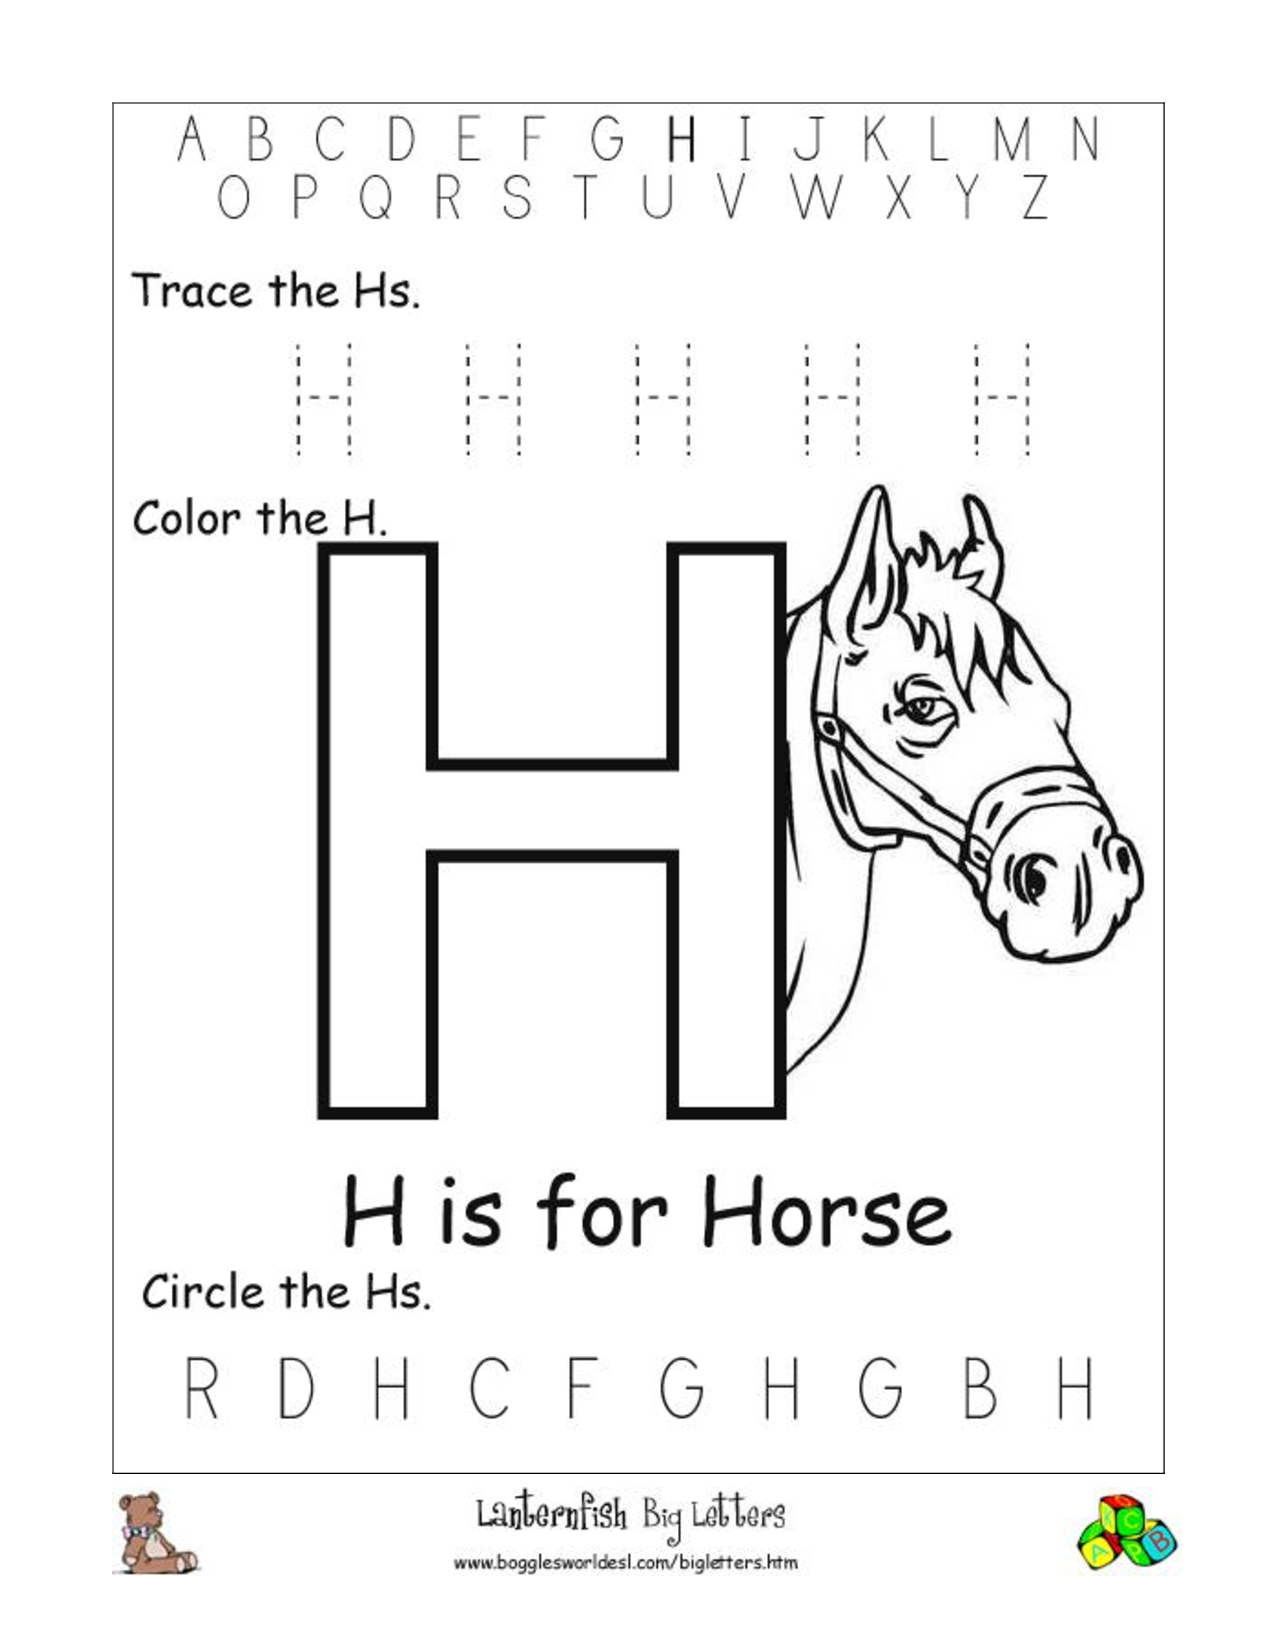 6 Best Images of Printable Letter H Worksheets - Printable Letter ...